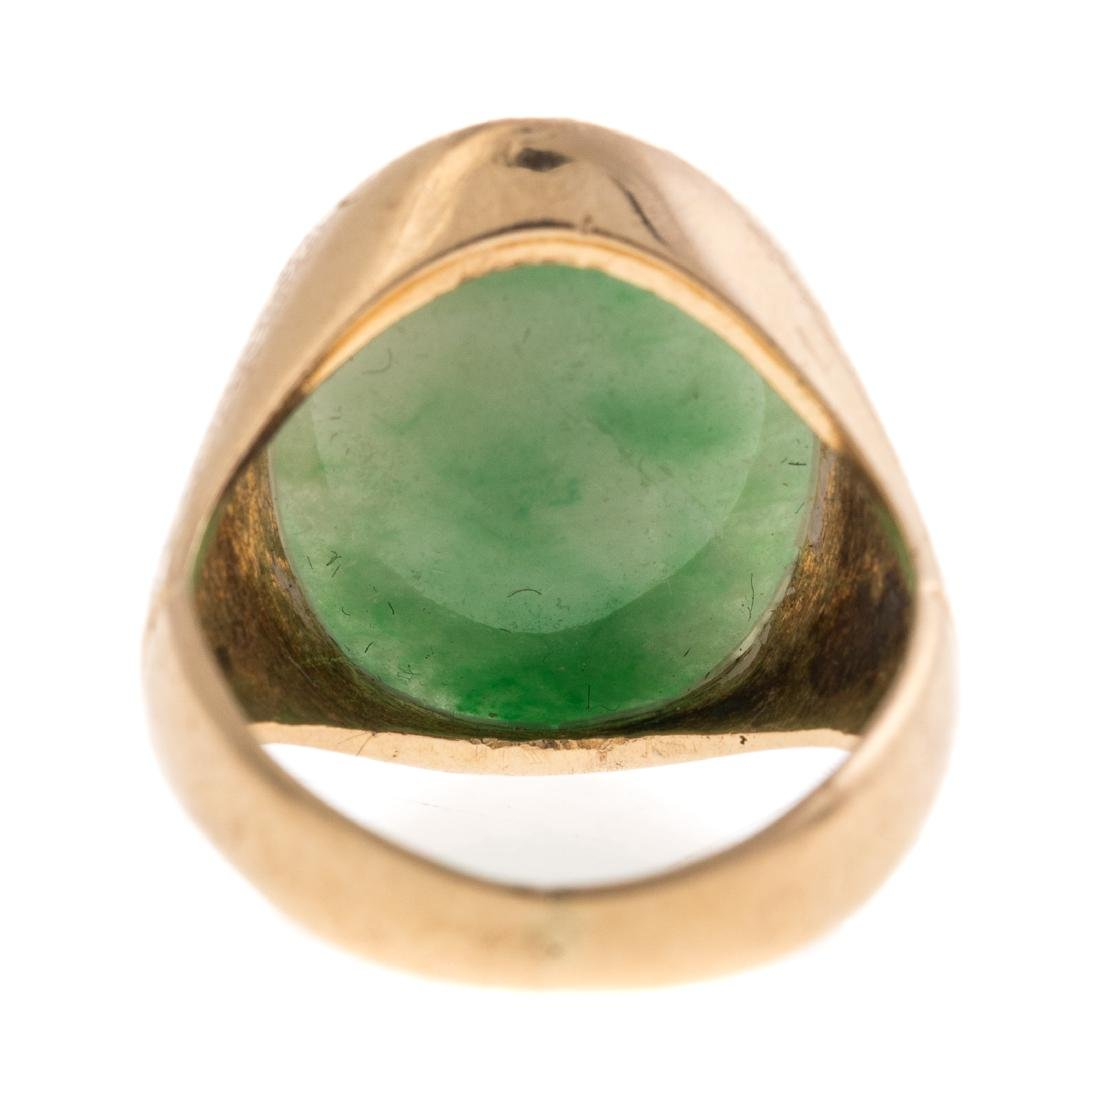 A Lady's Jadeite Ring in 14K Gold - 4